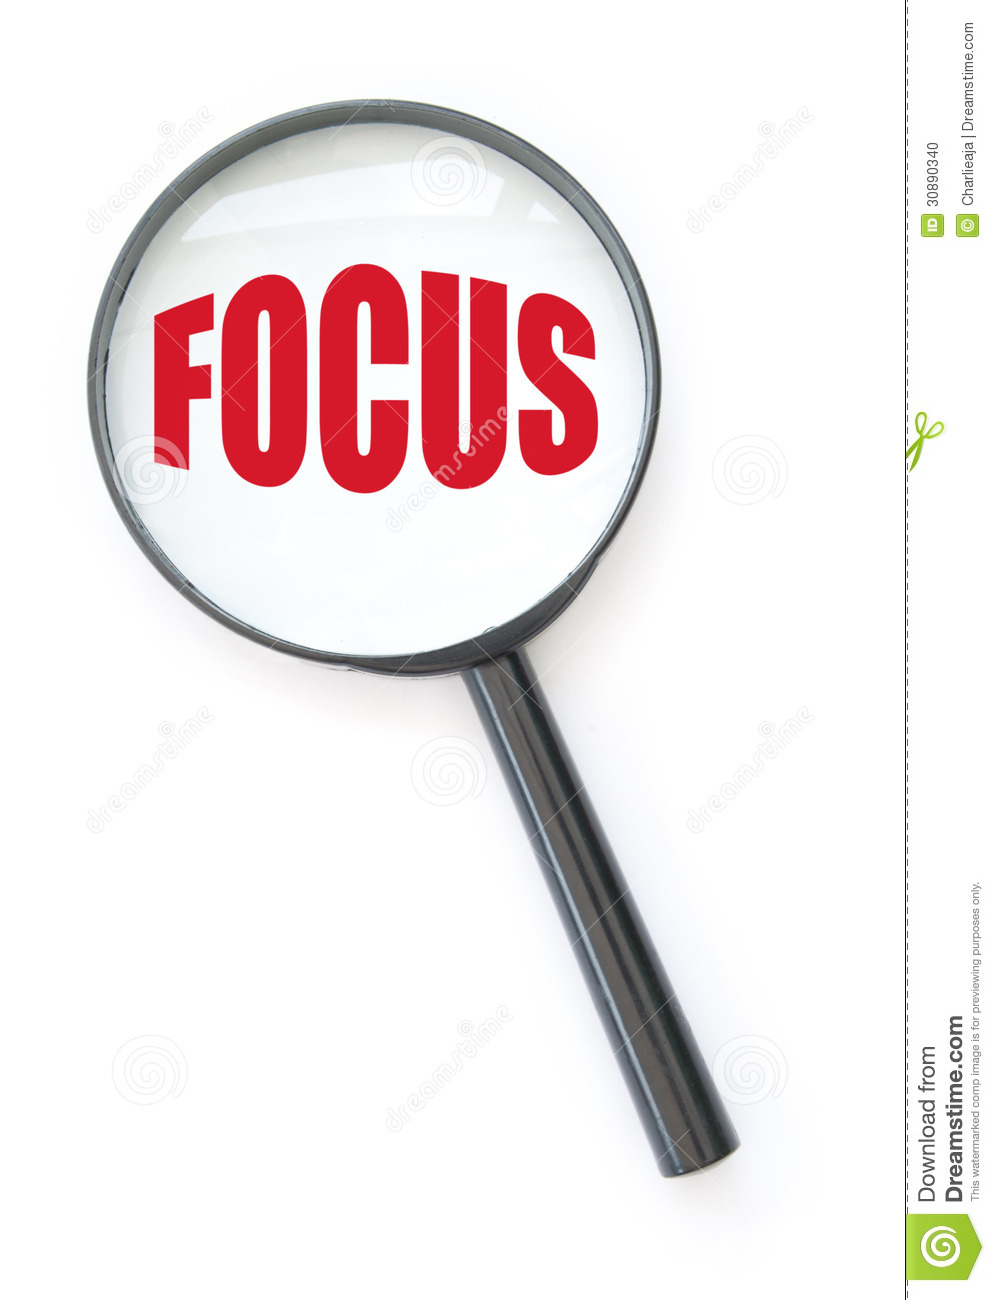 Magnifying Glass With Focus Stock Photo - Image: 30890340